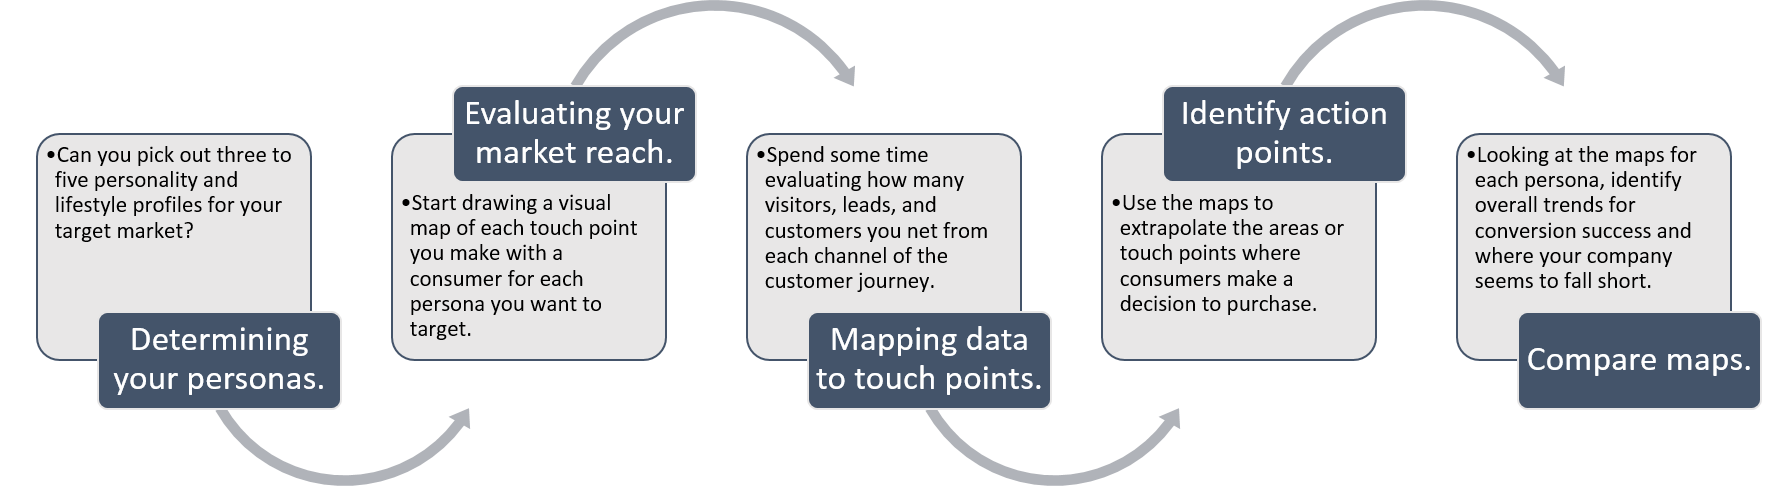 mapping-customer-journey